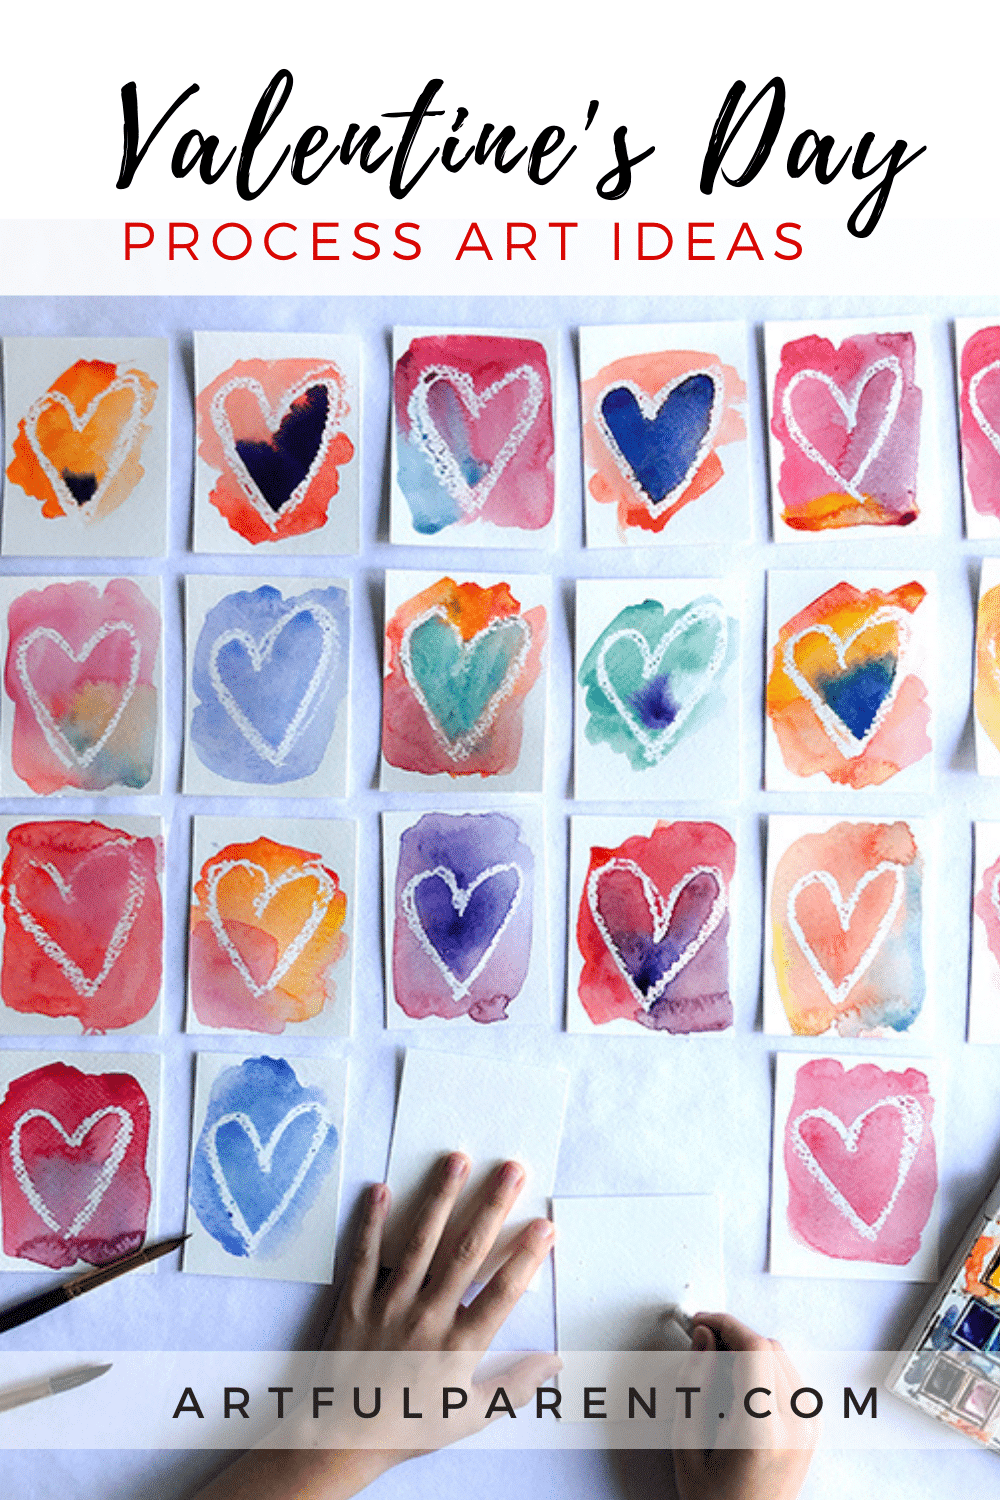 12 Process Art Ideas for Valentine\'s Day